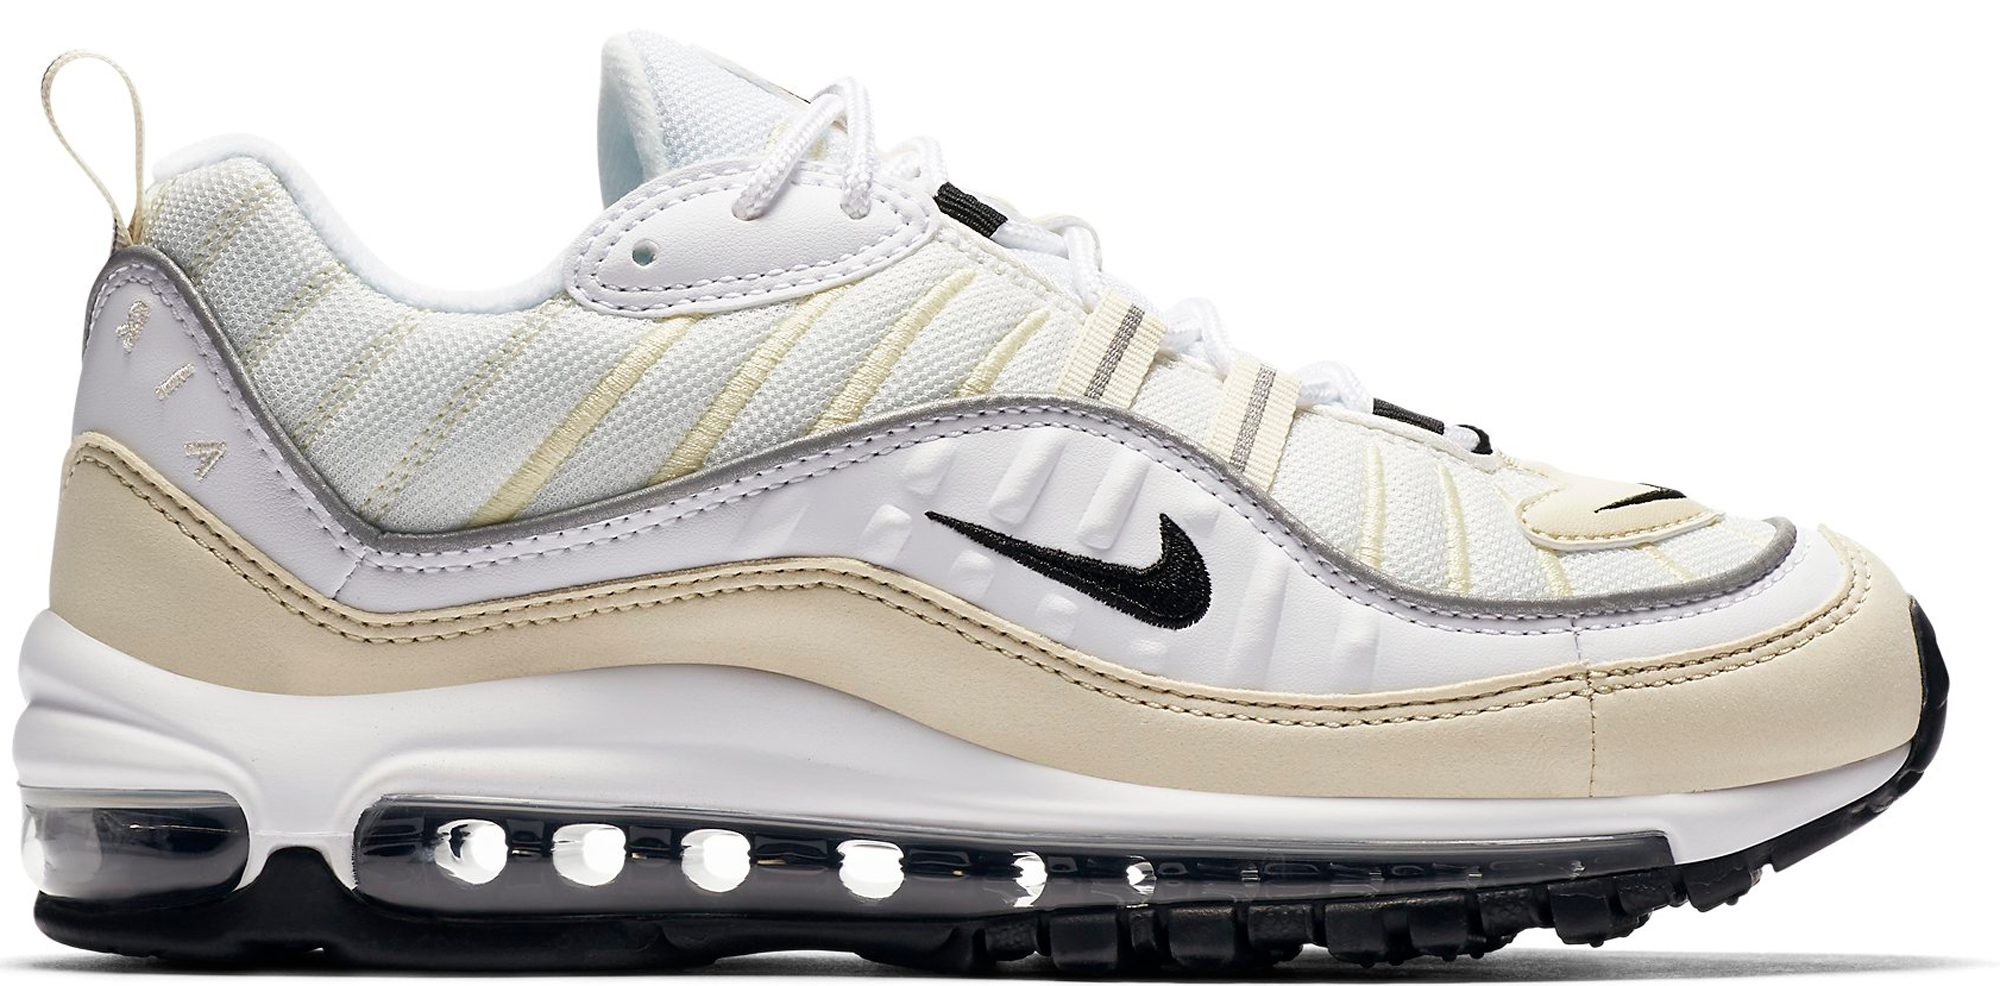 Women's Nike Air Max 98 Fossil - StockX